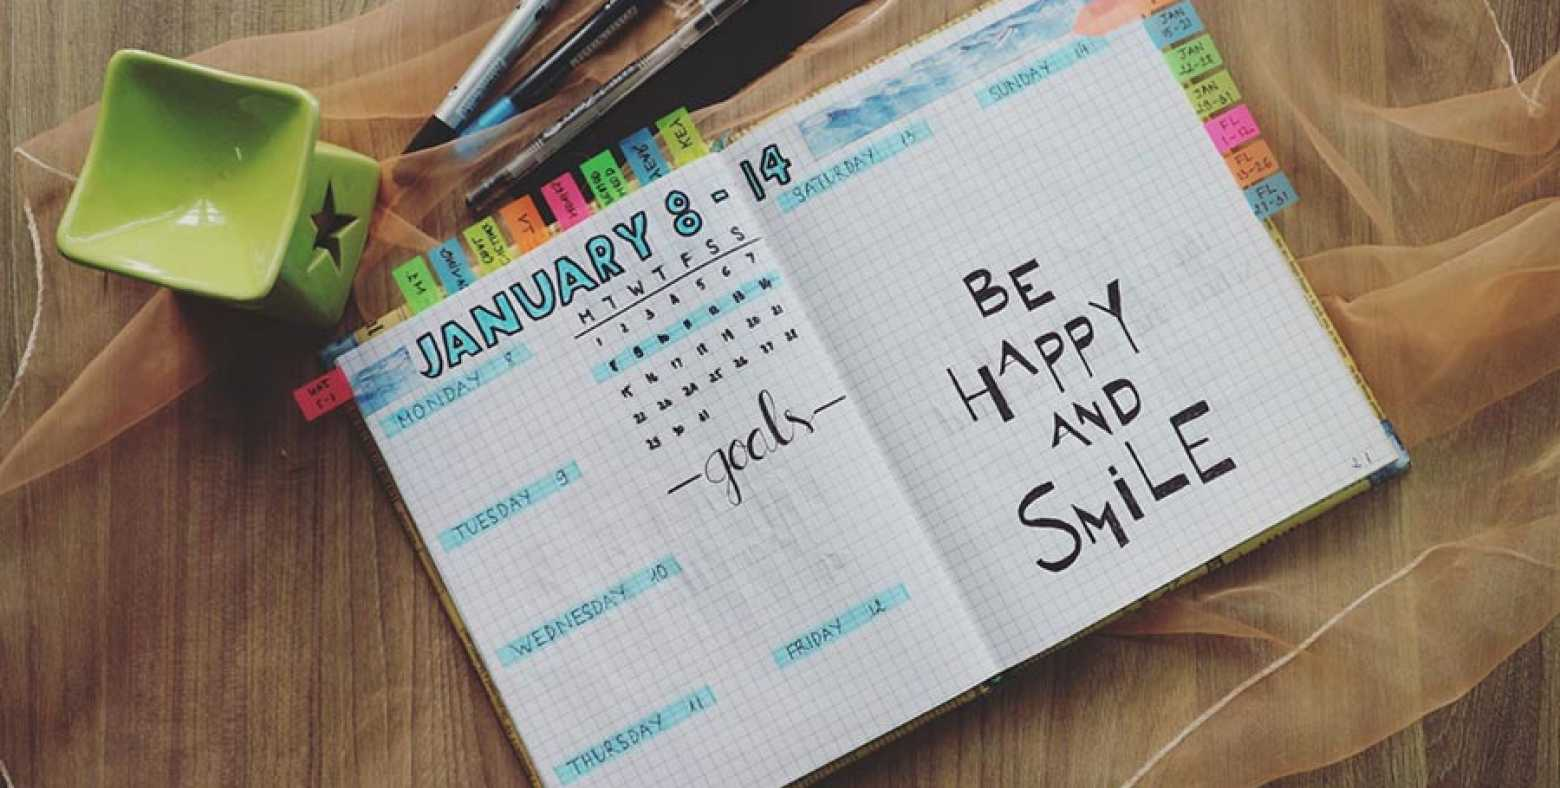 """Journal entry that says """"Be happy and smile"""""""